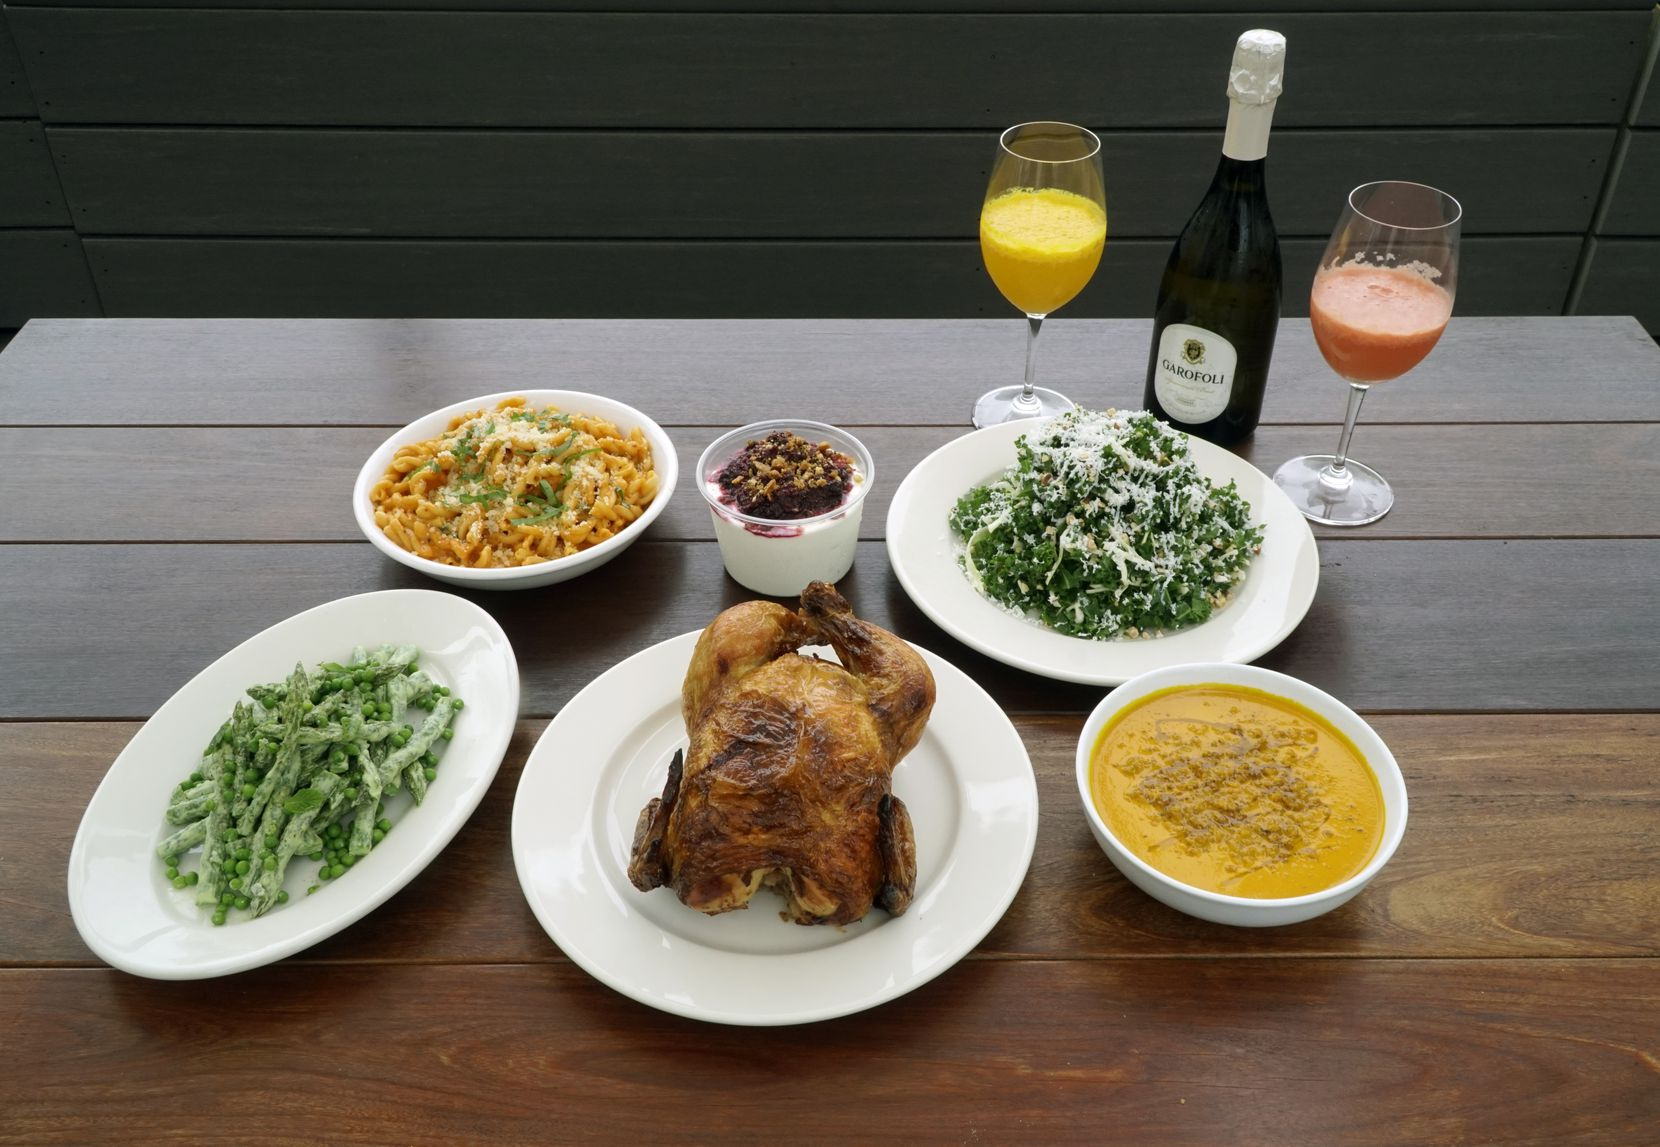 Mother's Day dinner at il Braccoo in Dallas on April 22, 2020. The dinner includes chilled carrot soup, kale salad, roasted whole chicken, asparagus and peas, panna cotta, and a mimosa kit.